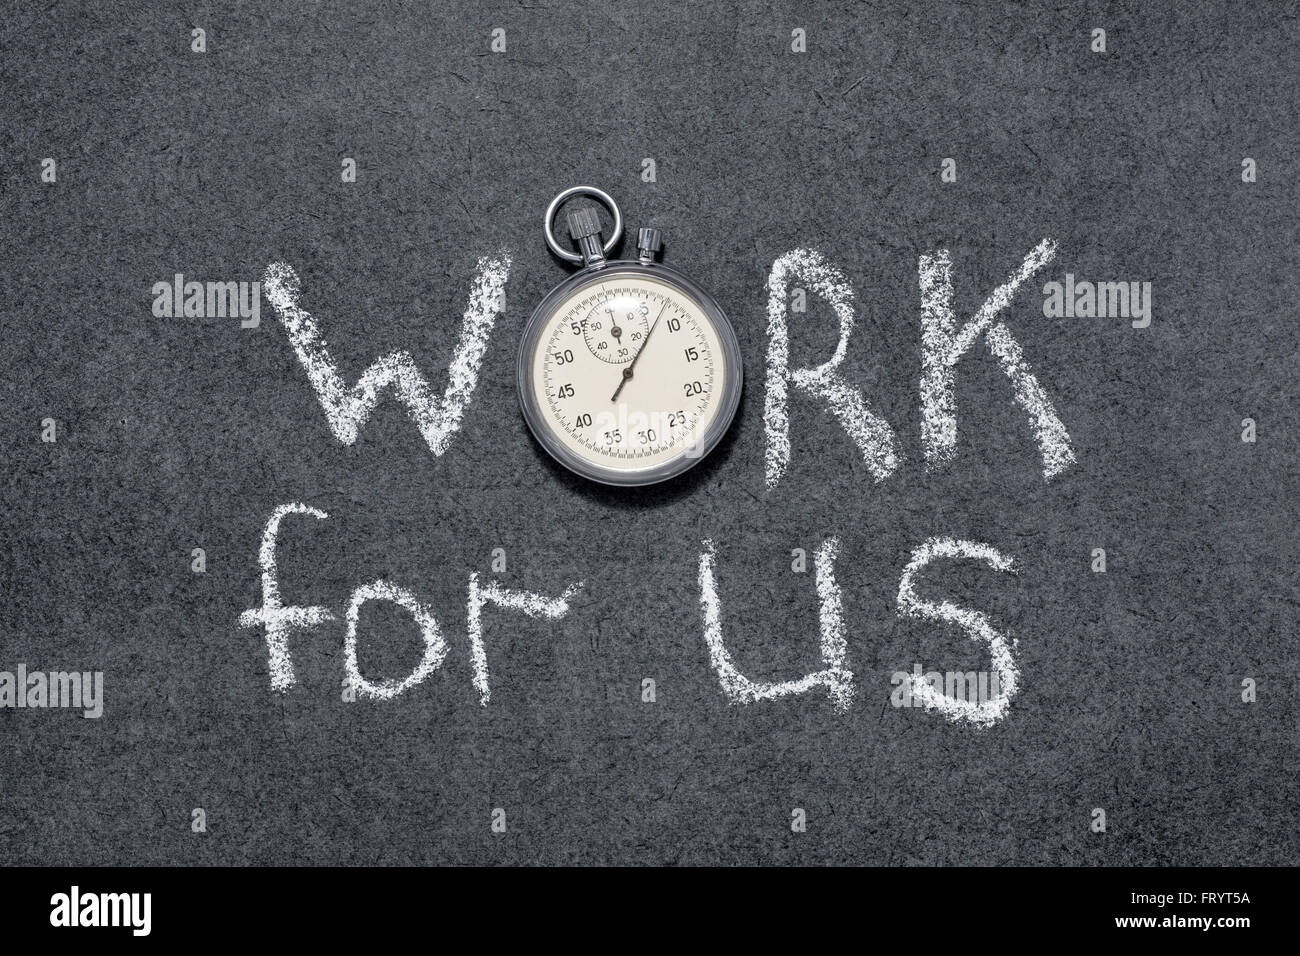 work for us phrase handwritten on chalkboard with vintage precise stopwatch used instead of O - Stock Image